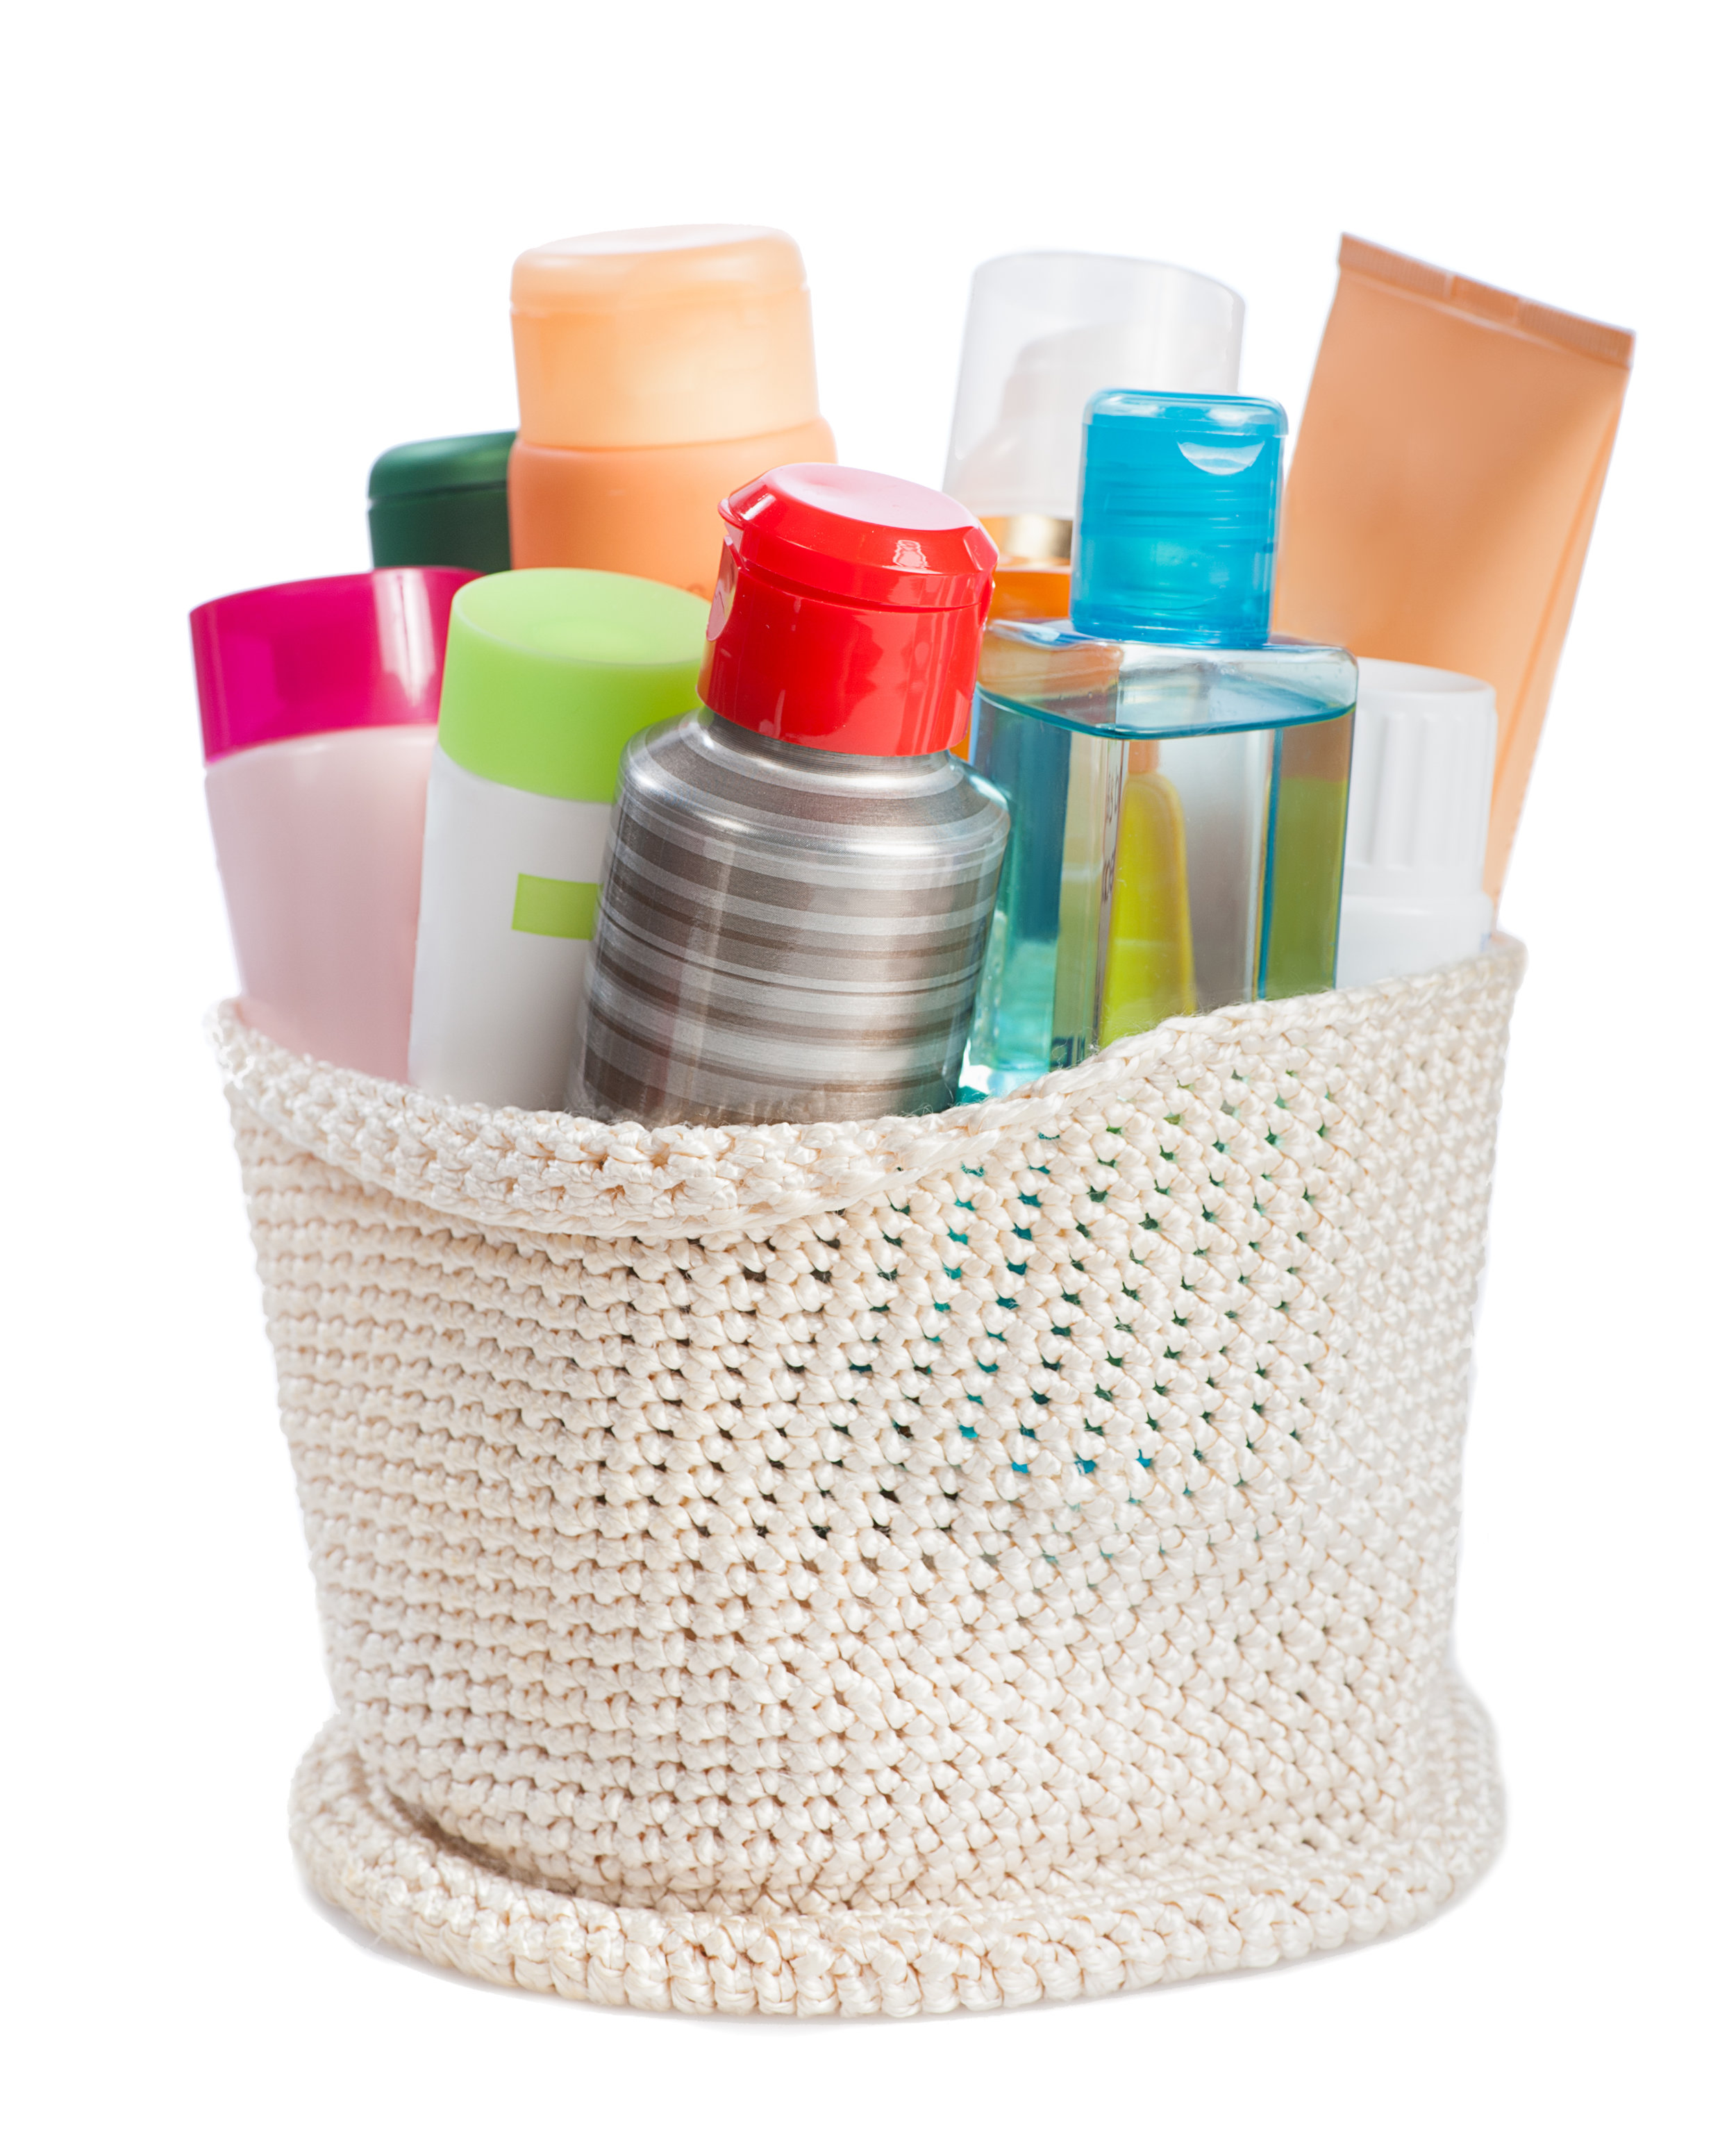 Show your guests some love, offer up the essentials in the washrooms!